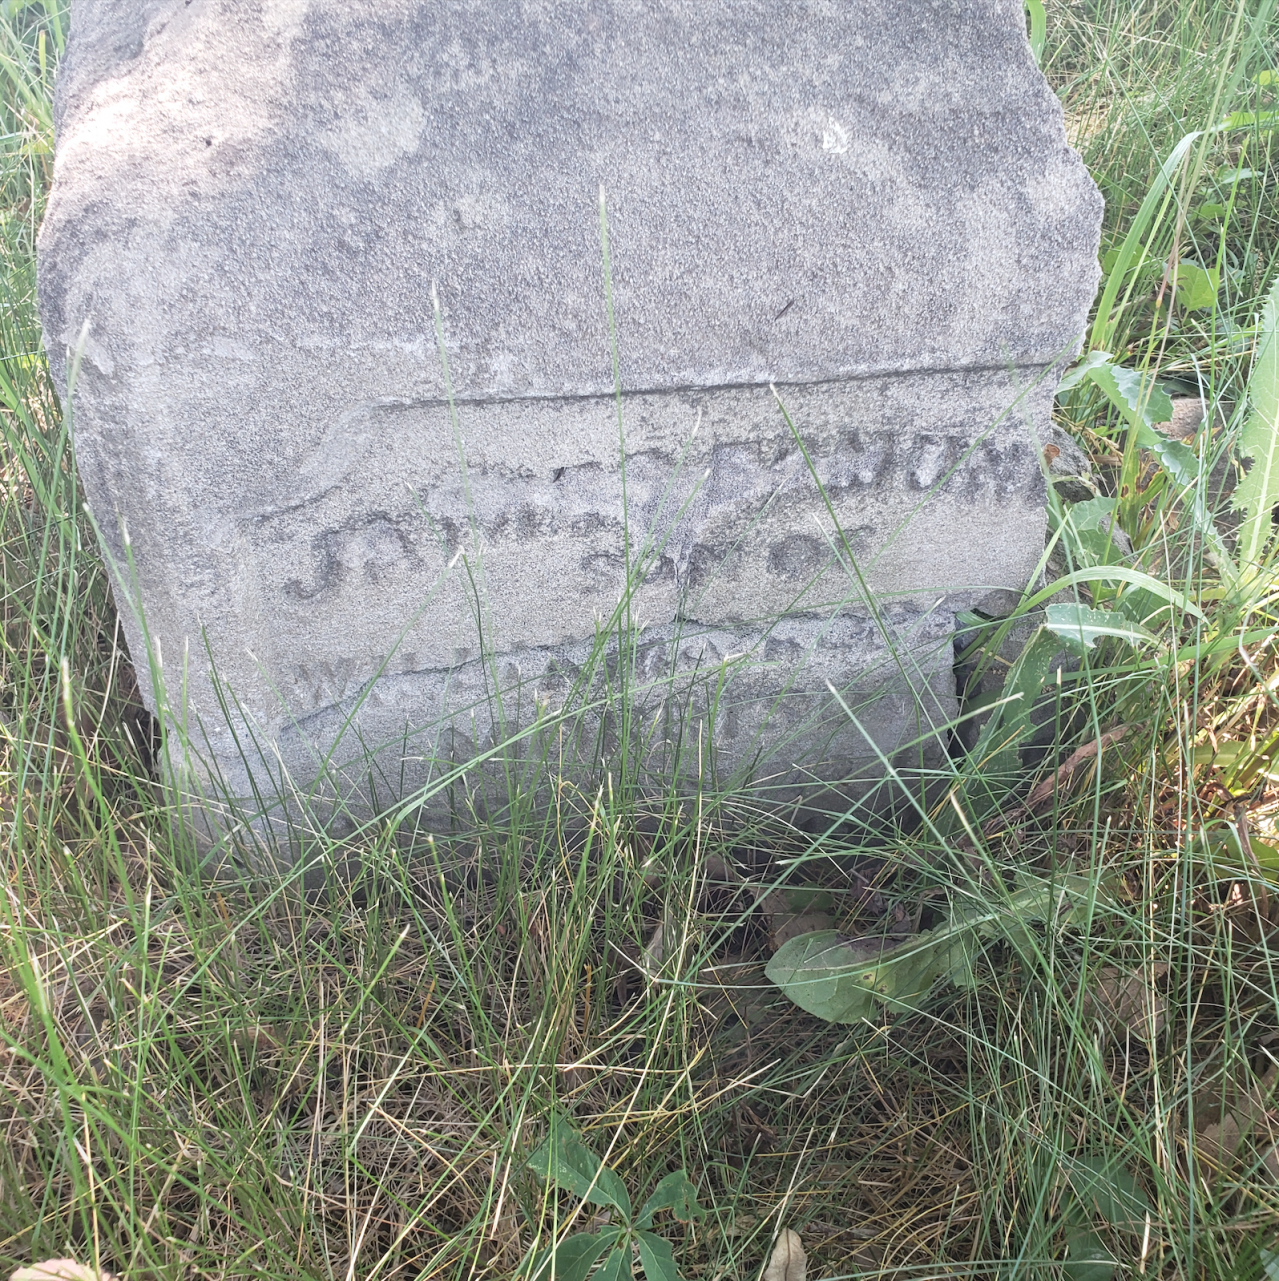 Edmunds/Willoughby Cemetery - July 4 2020 - 7.png